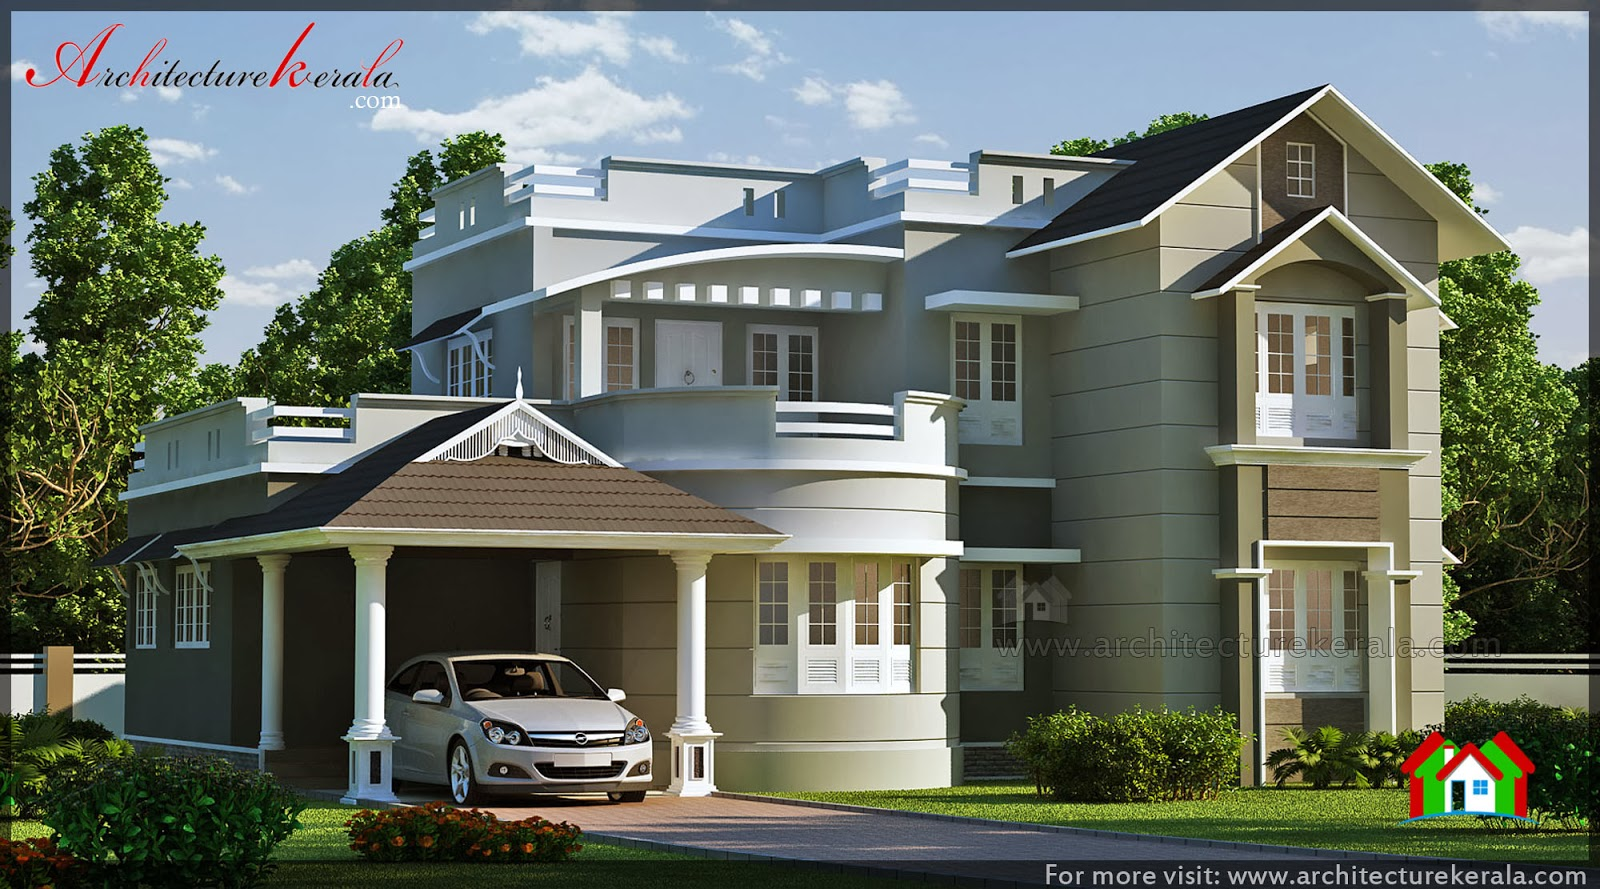 Good looking house design architecture kerala for Arch design indian home plans